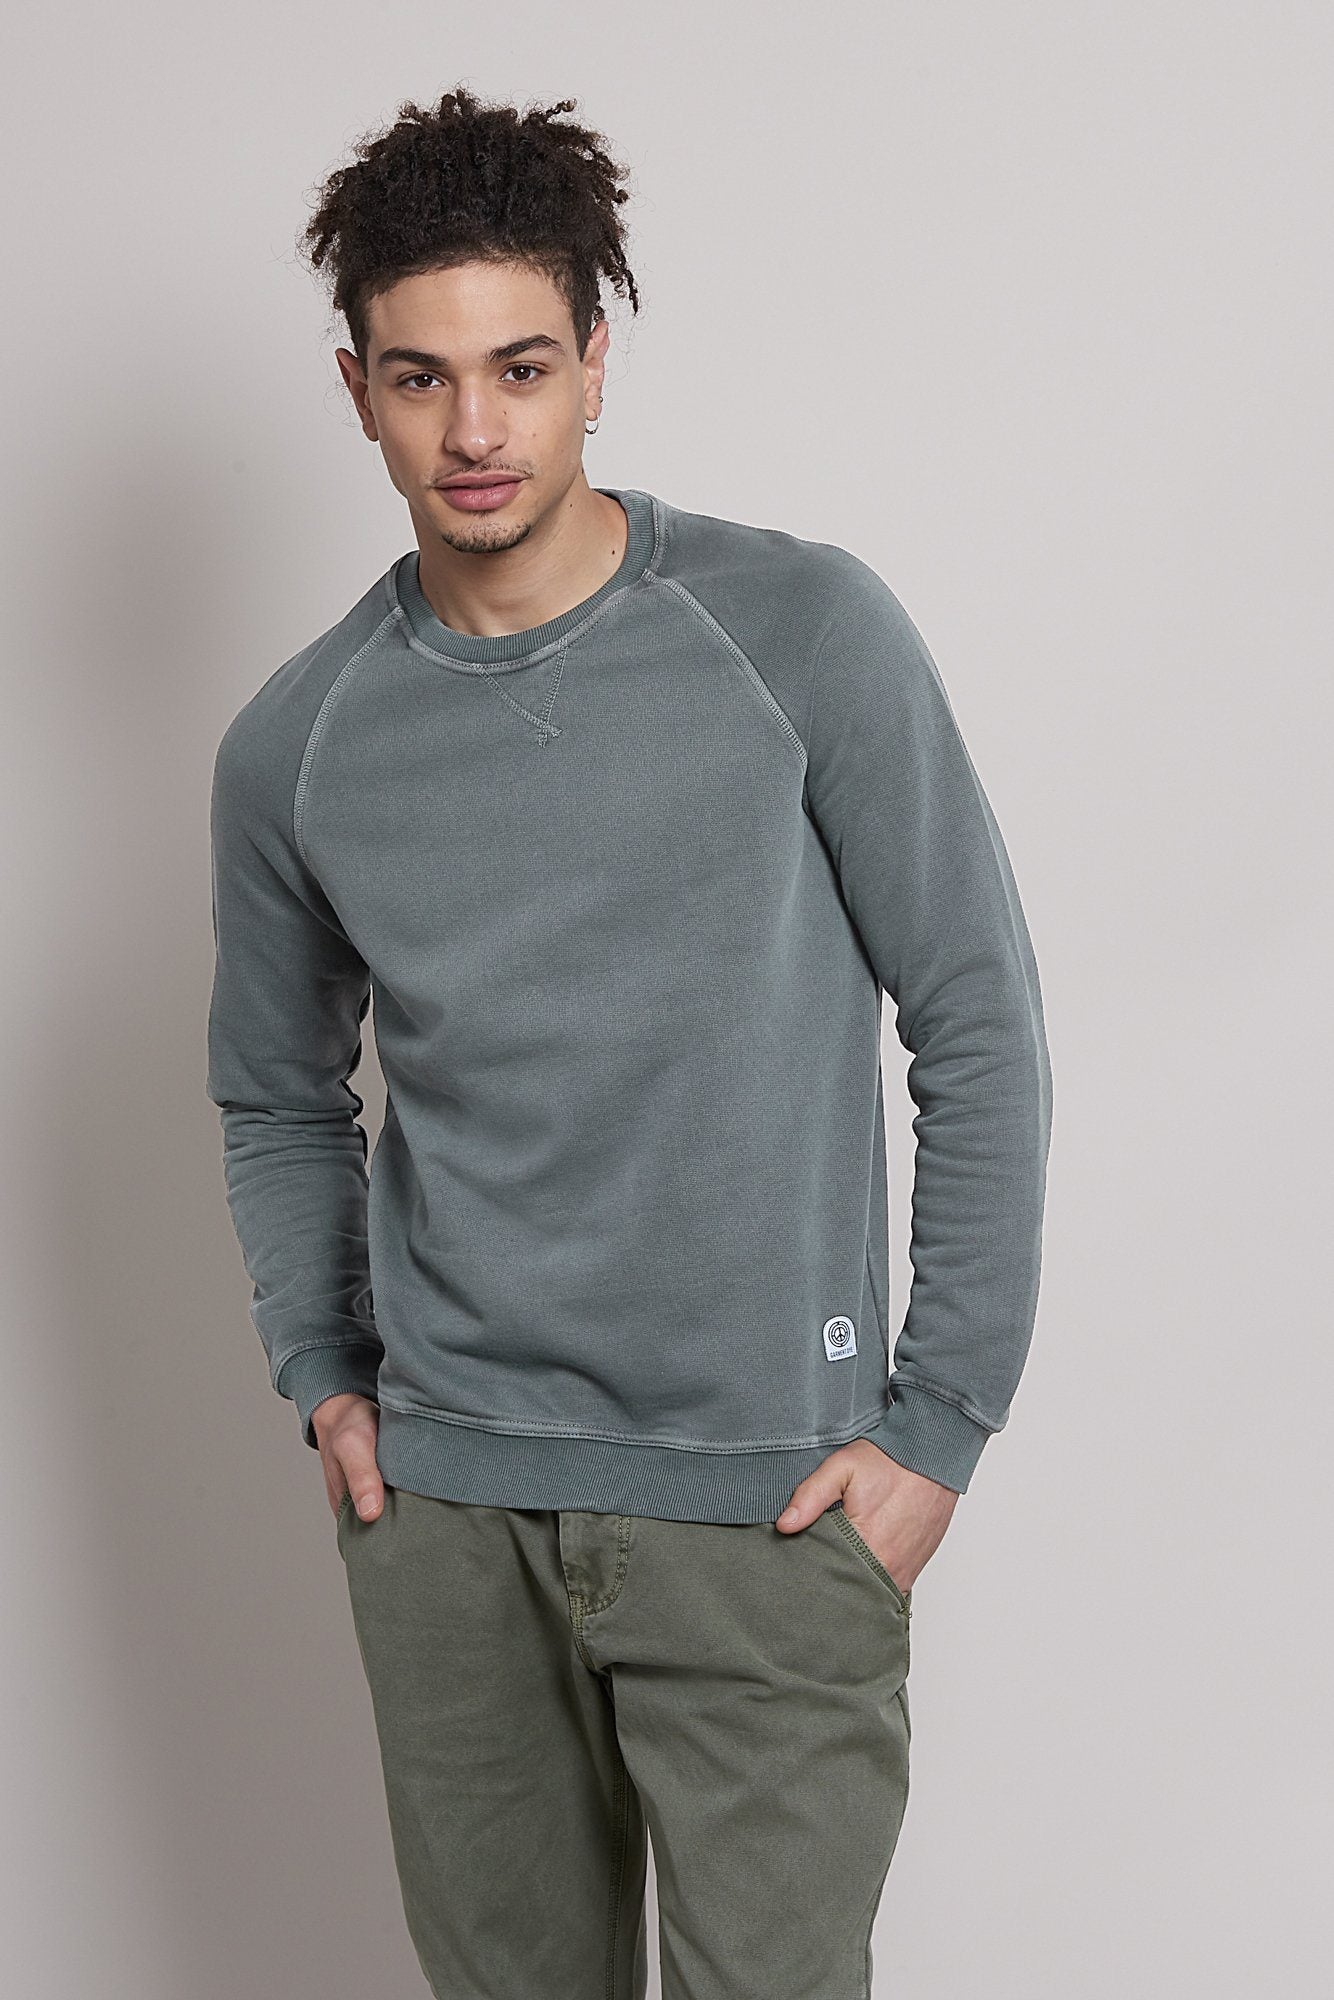 Jumper - ANTON Organic Cotton Raglan Sweat Coal